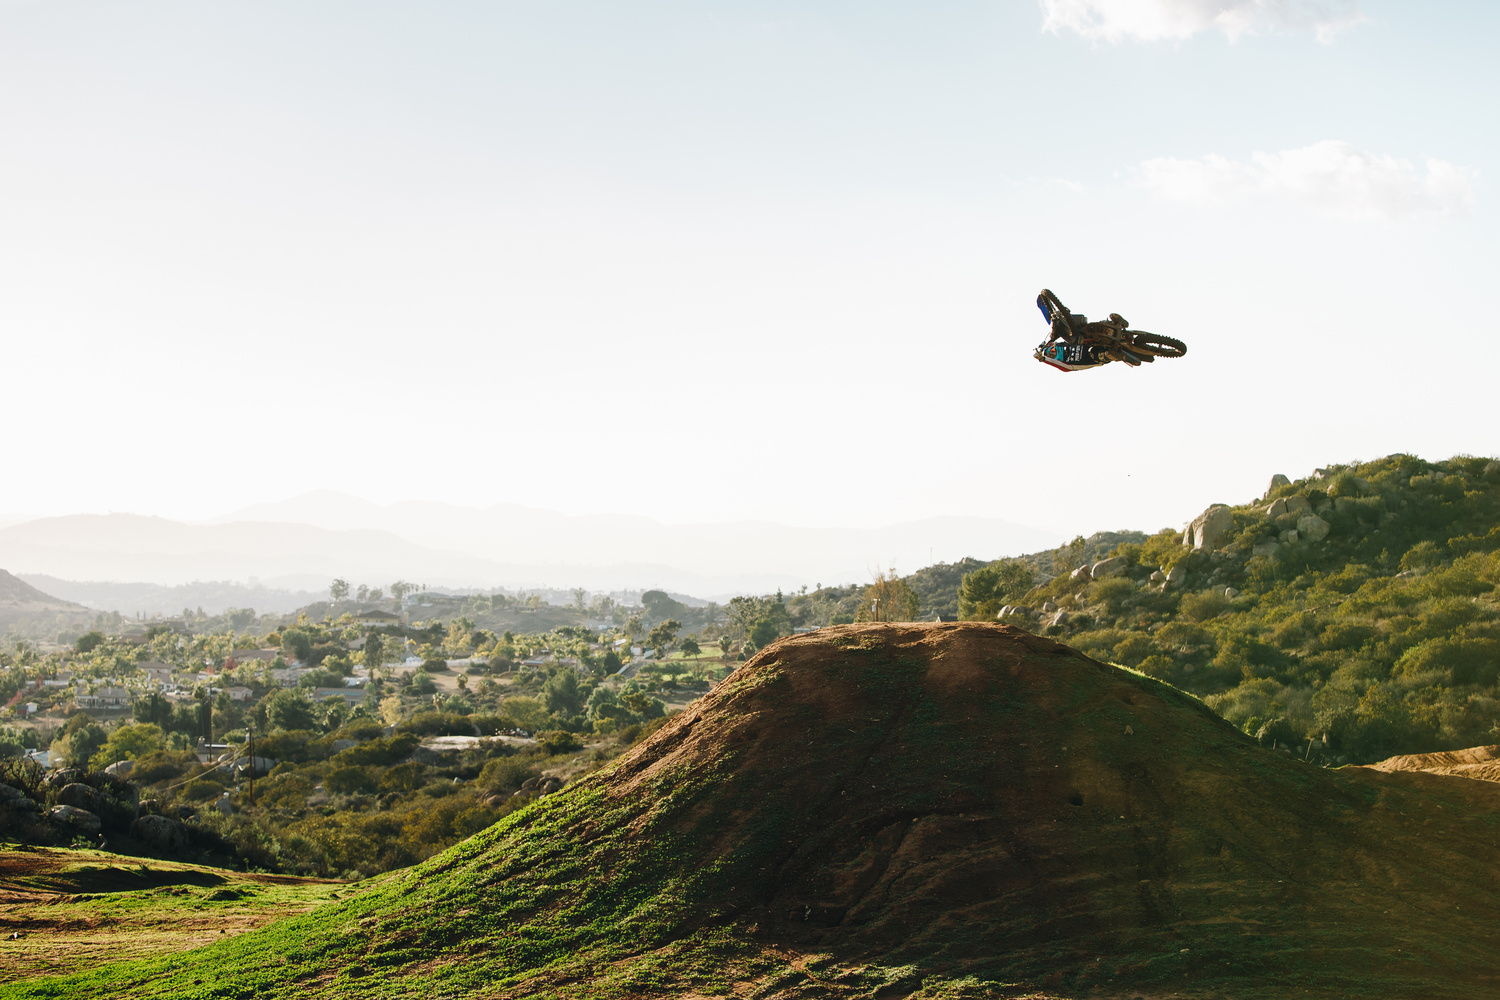 Afternoon Moto in San Diego by Luca Cometti